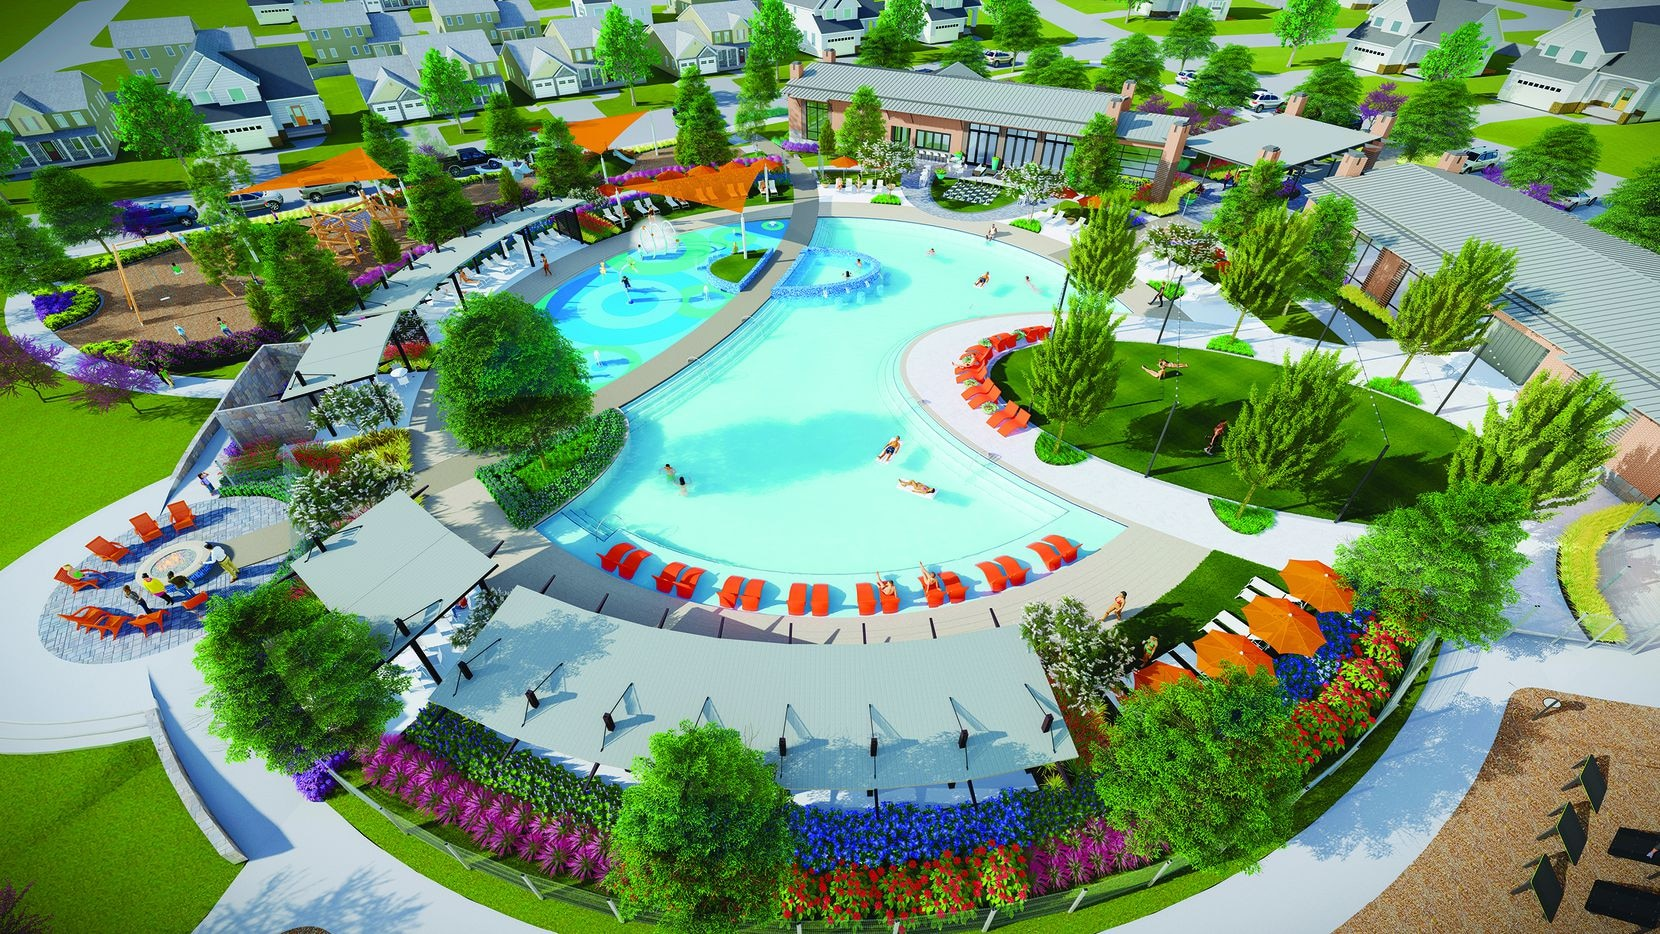 The Ridge at Northlake's initial property release will include the first 267 homesites and a 4-plus-acre amenity center with a lagoon-style pool and splash park.